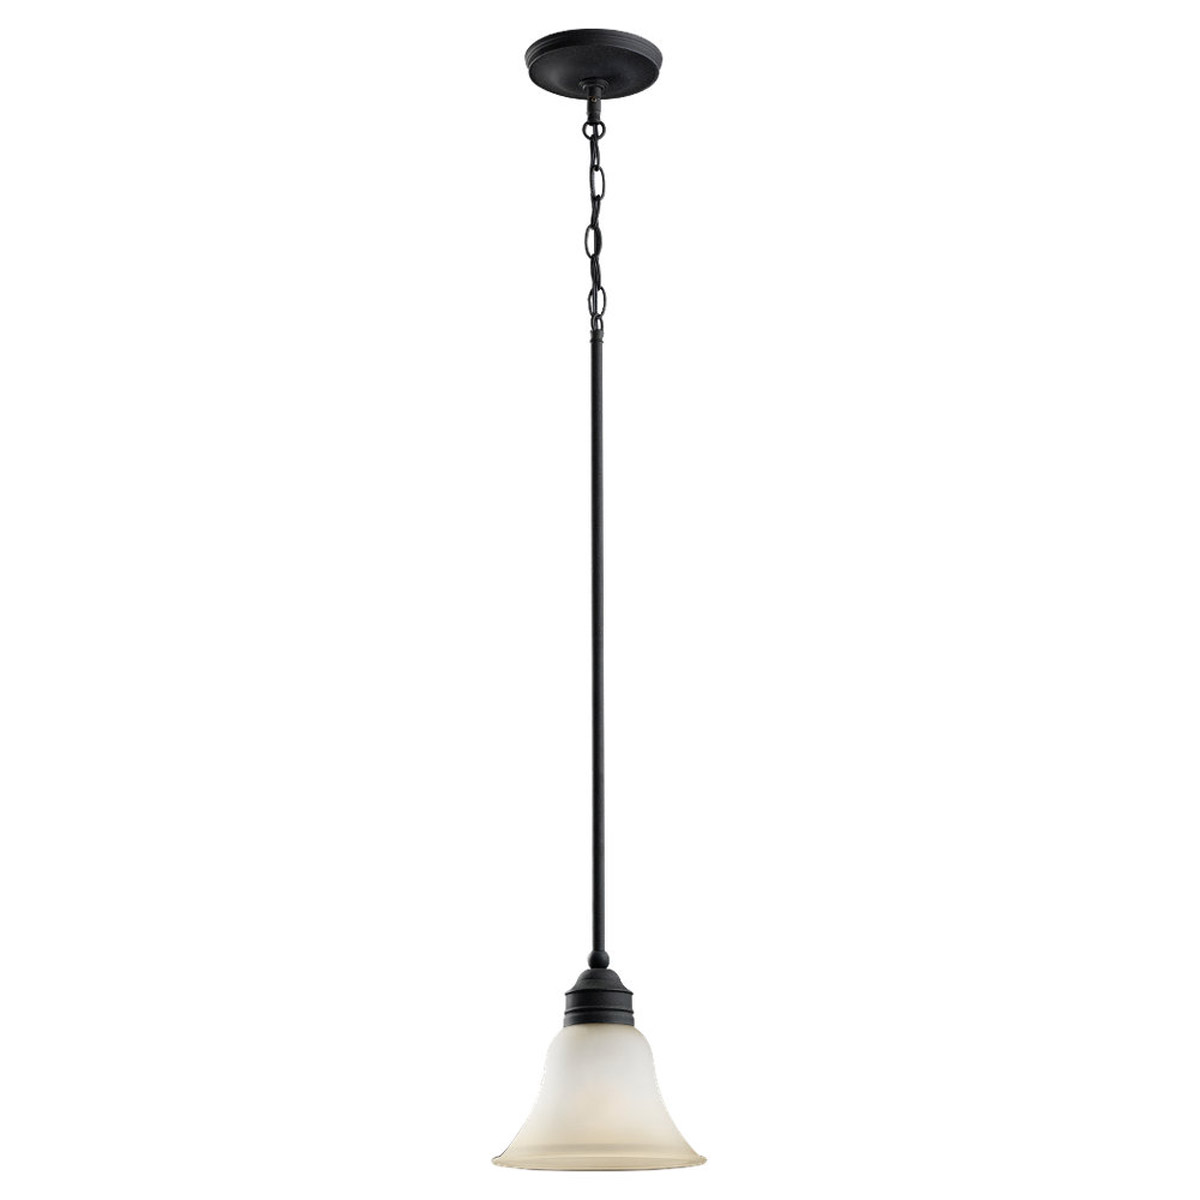 Sea Gull Lighting Gladstone 1 Light Fluorescent Pendant in Forged Iron 61850BLE-185 photo